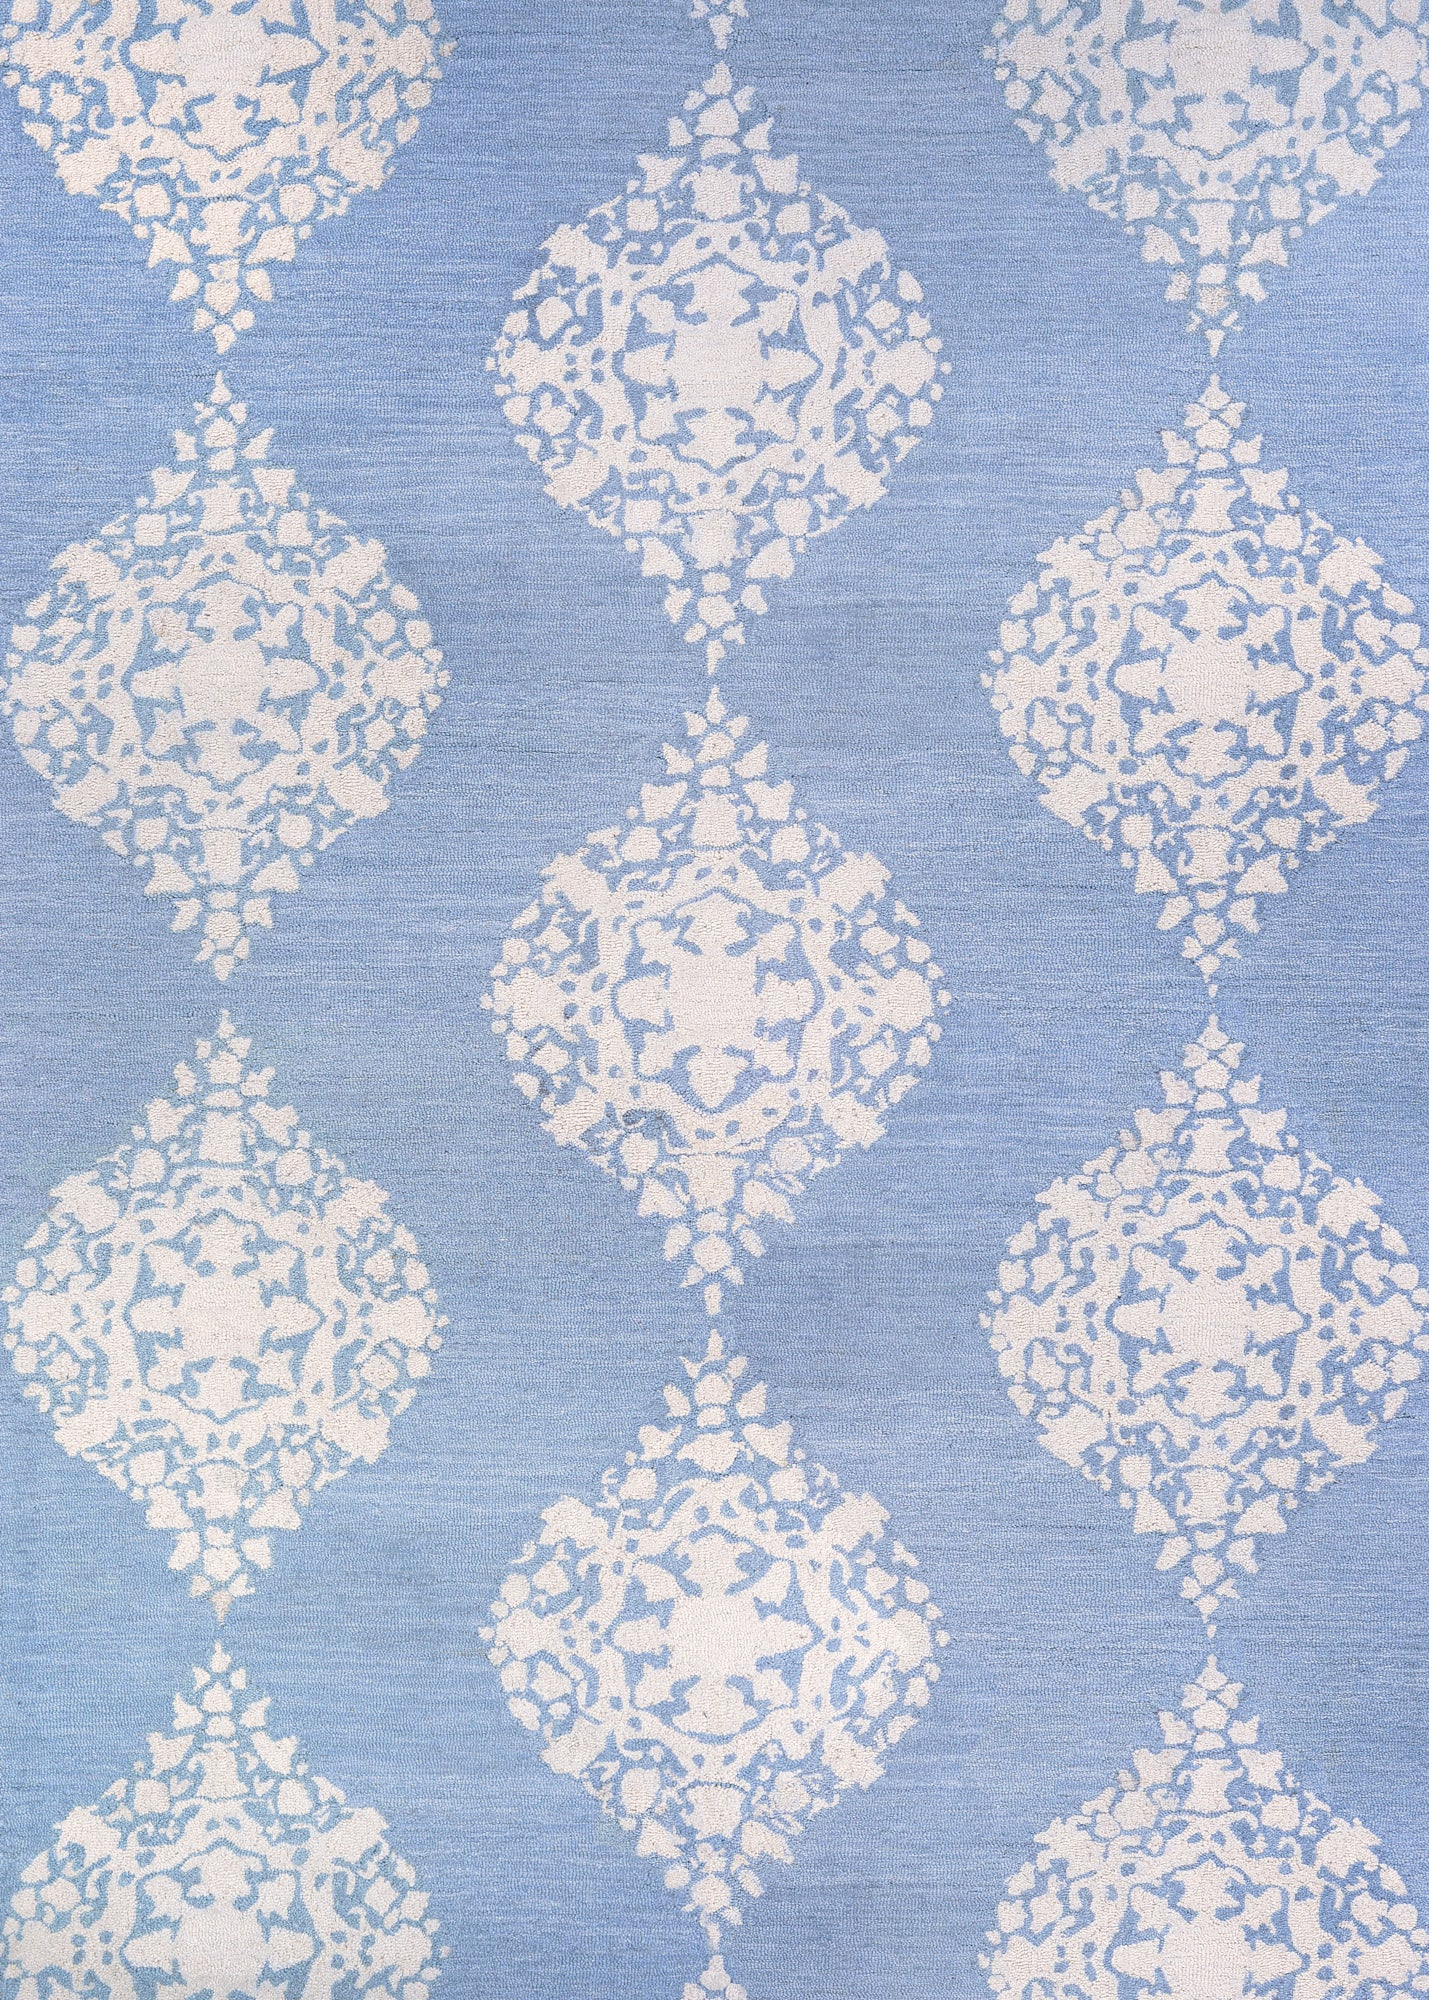 Couristan Crawford Ornament Powder Blue Area Rug main image